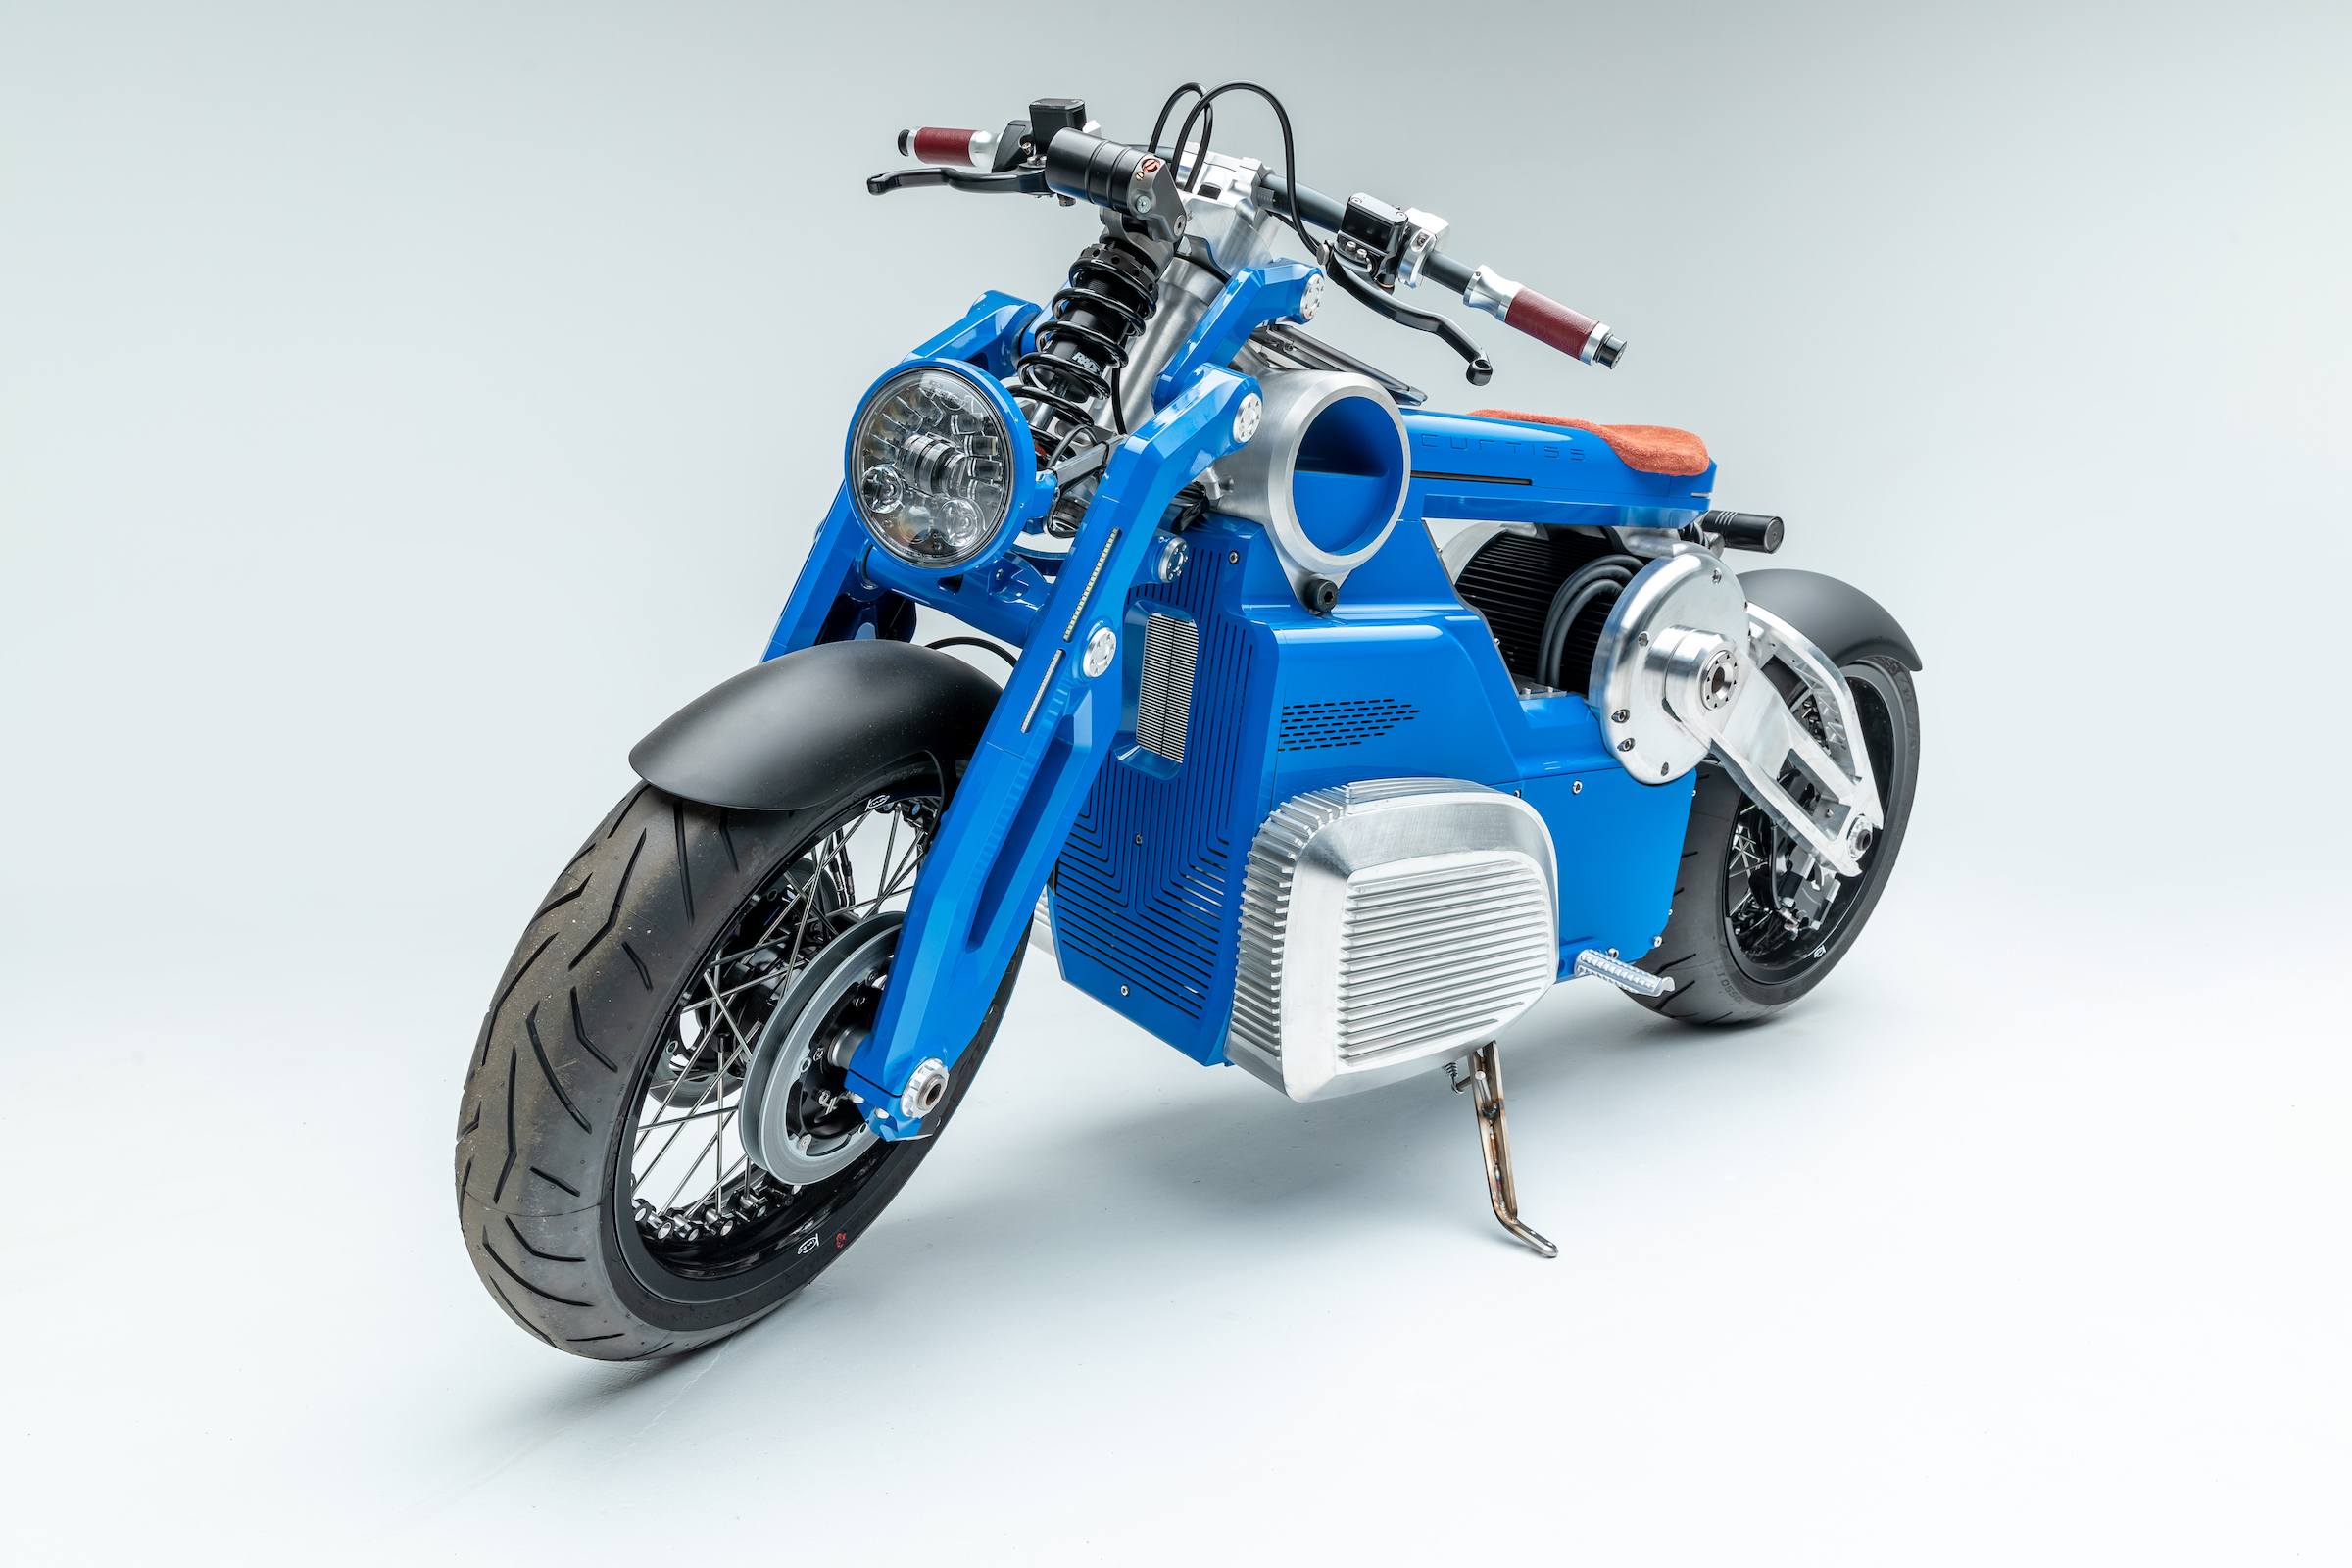 Ebay Motors Motorcycles >> The Curtiss Zeus Electric Motorcycle - 190 HP - 0-60 MPH ...